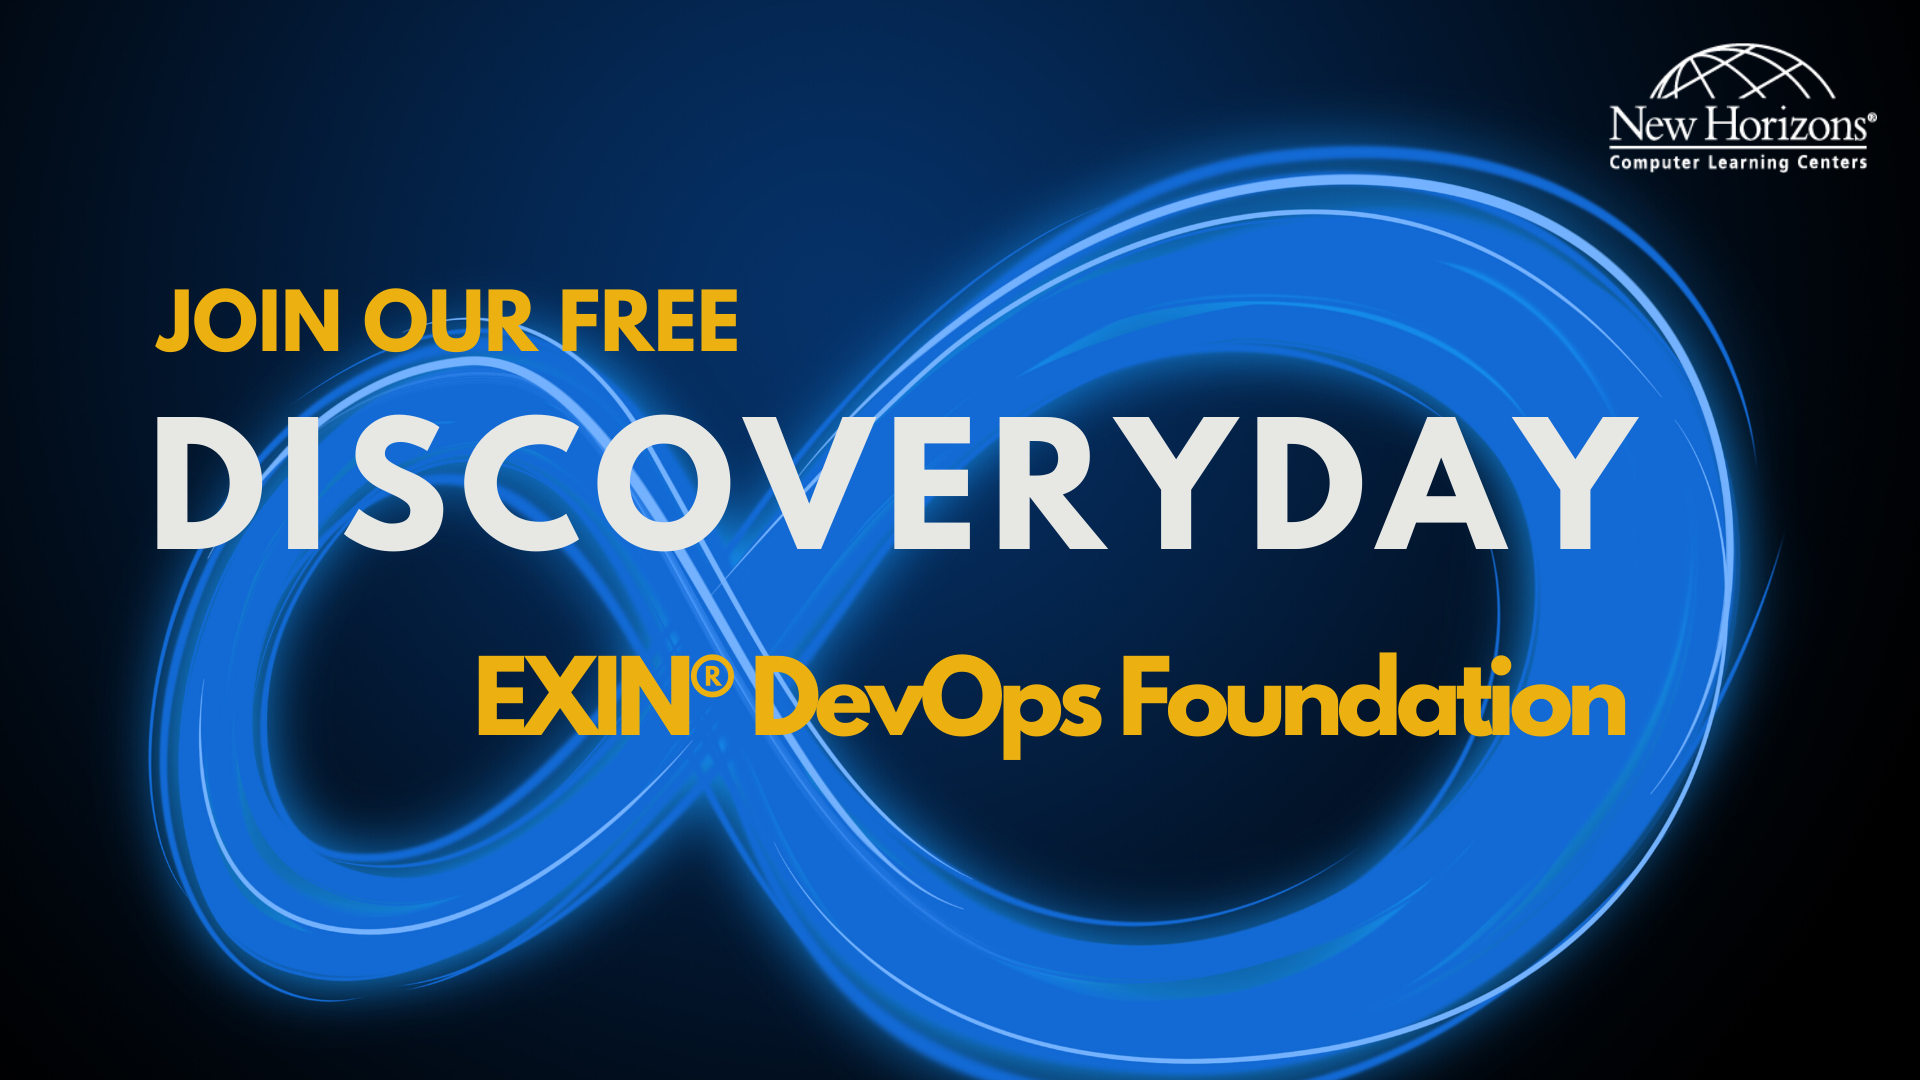 Kostenloser Discovery Day - EXIN DevOps Foundation